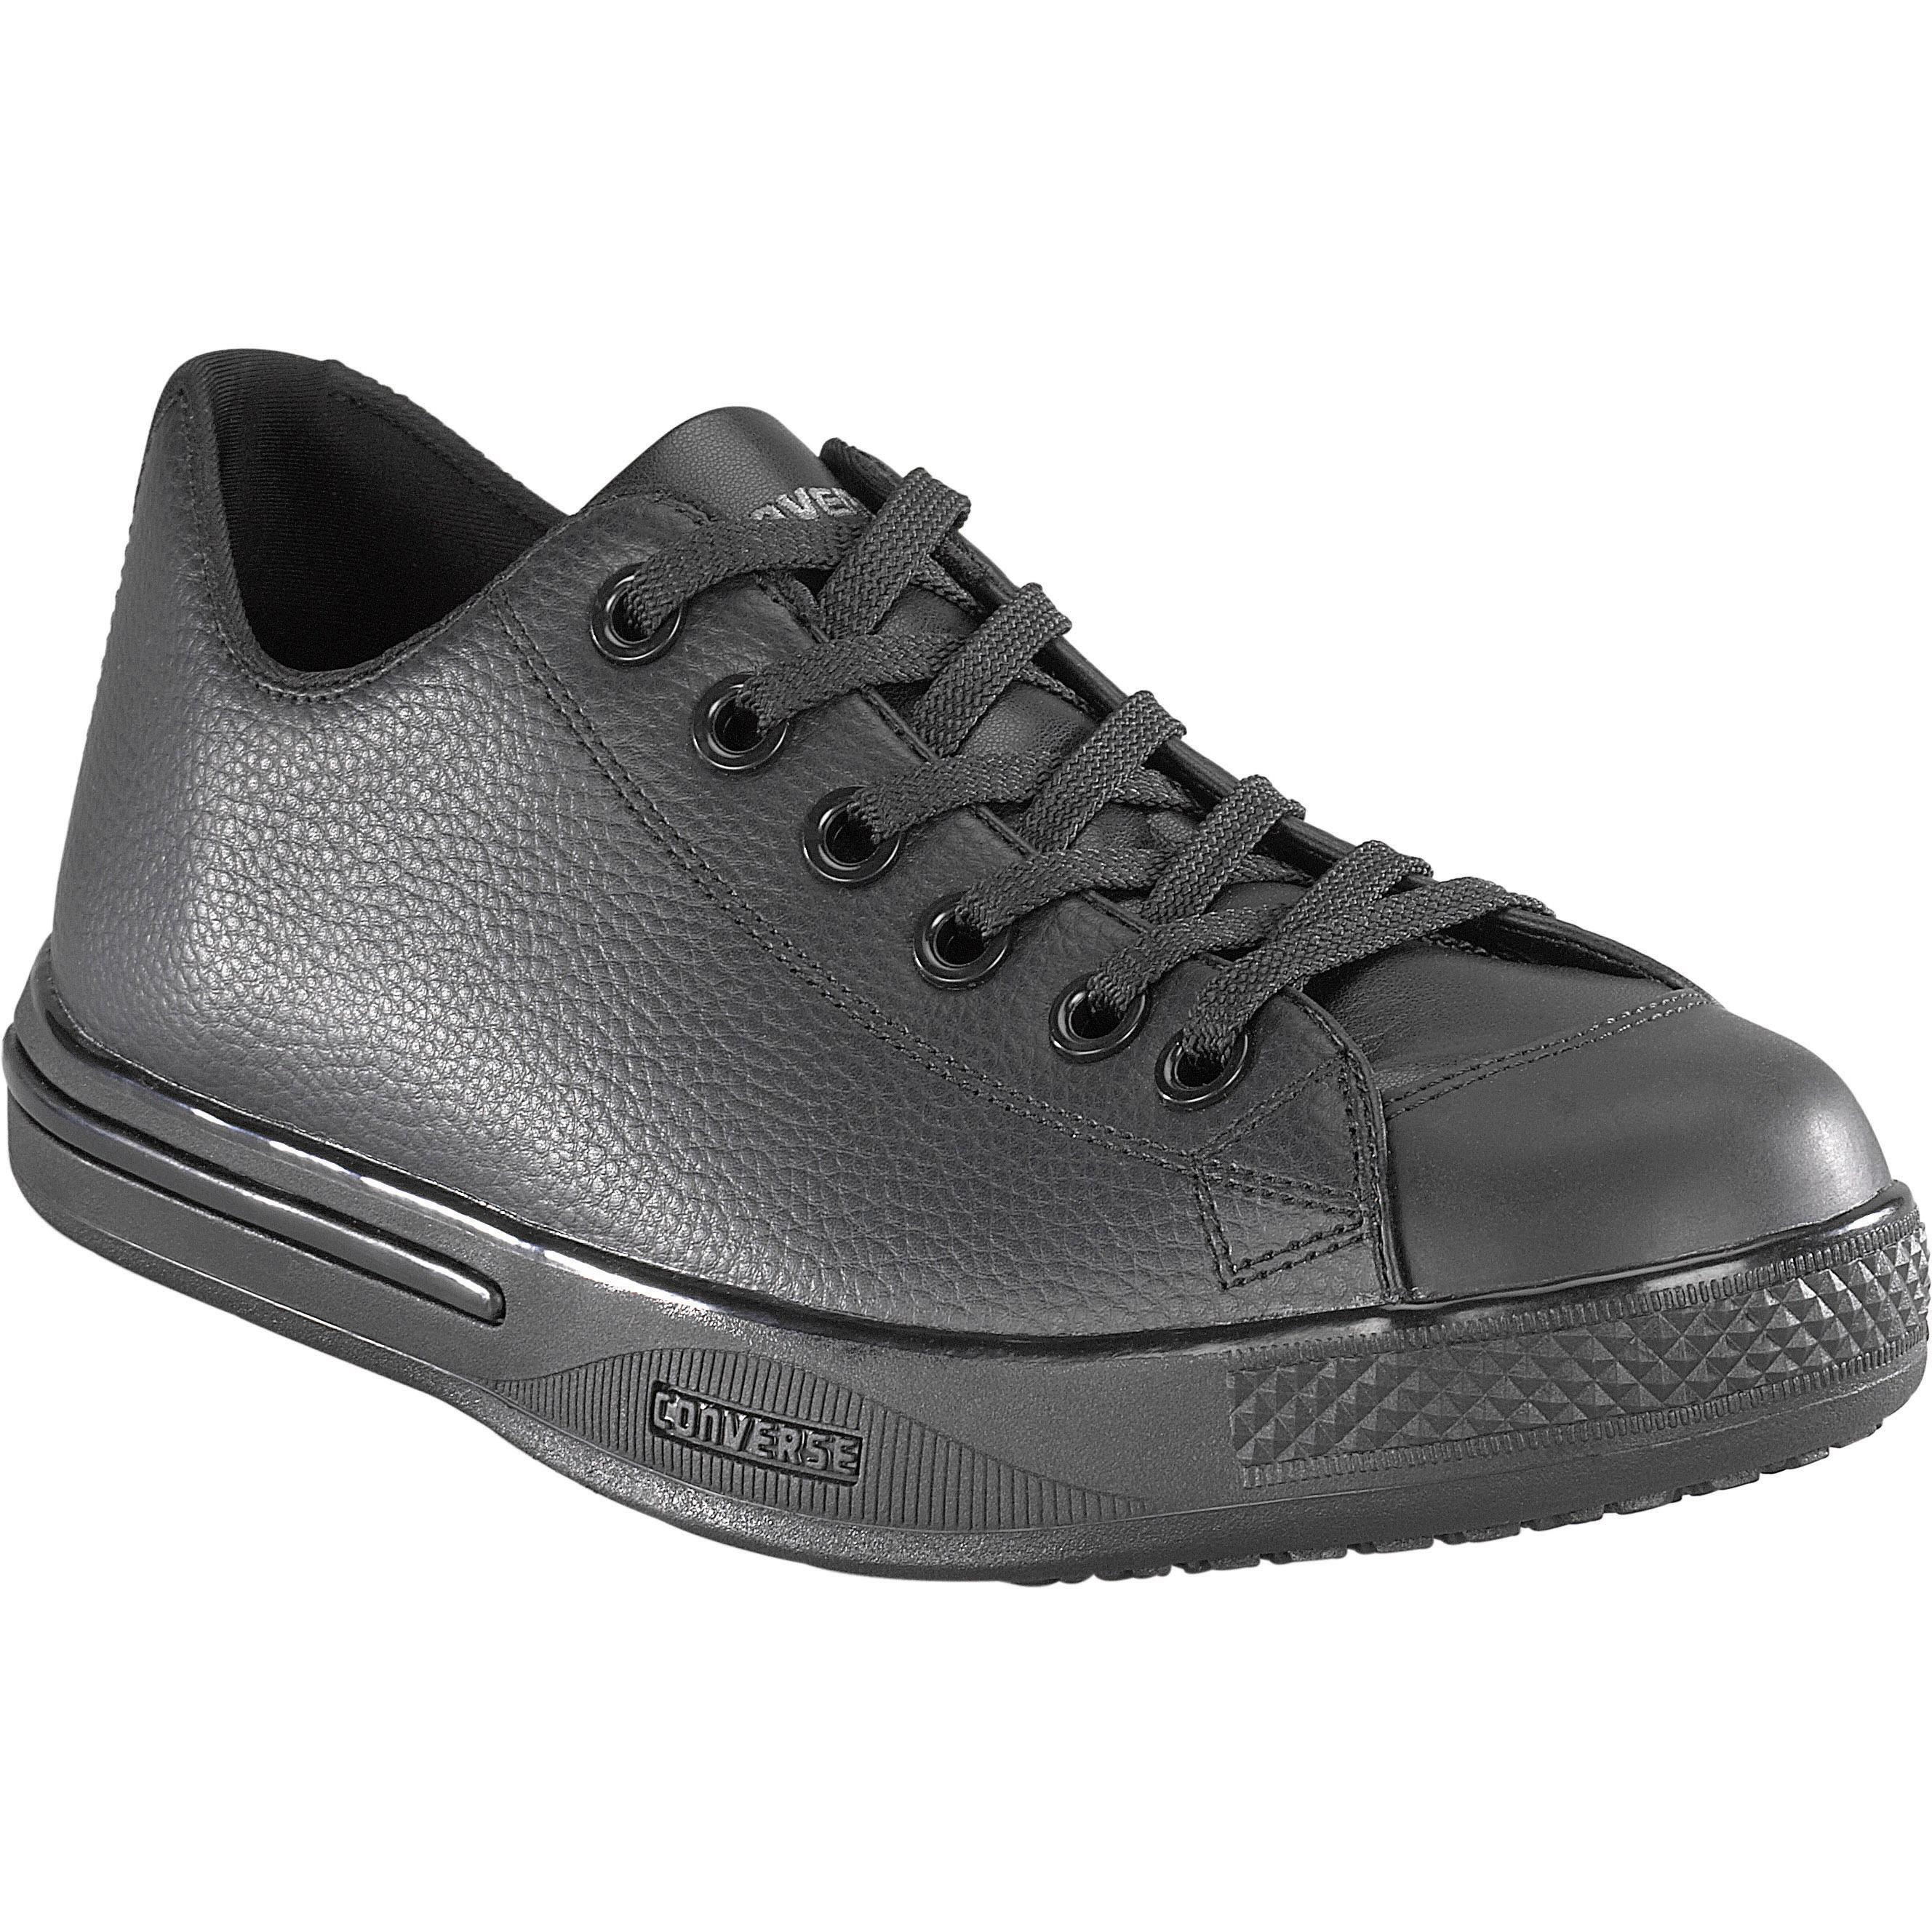 converse slip resistant oxford lehigh safety shoes